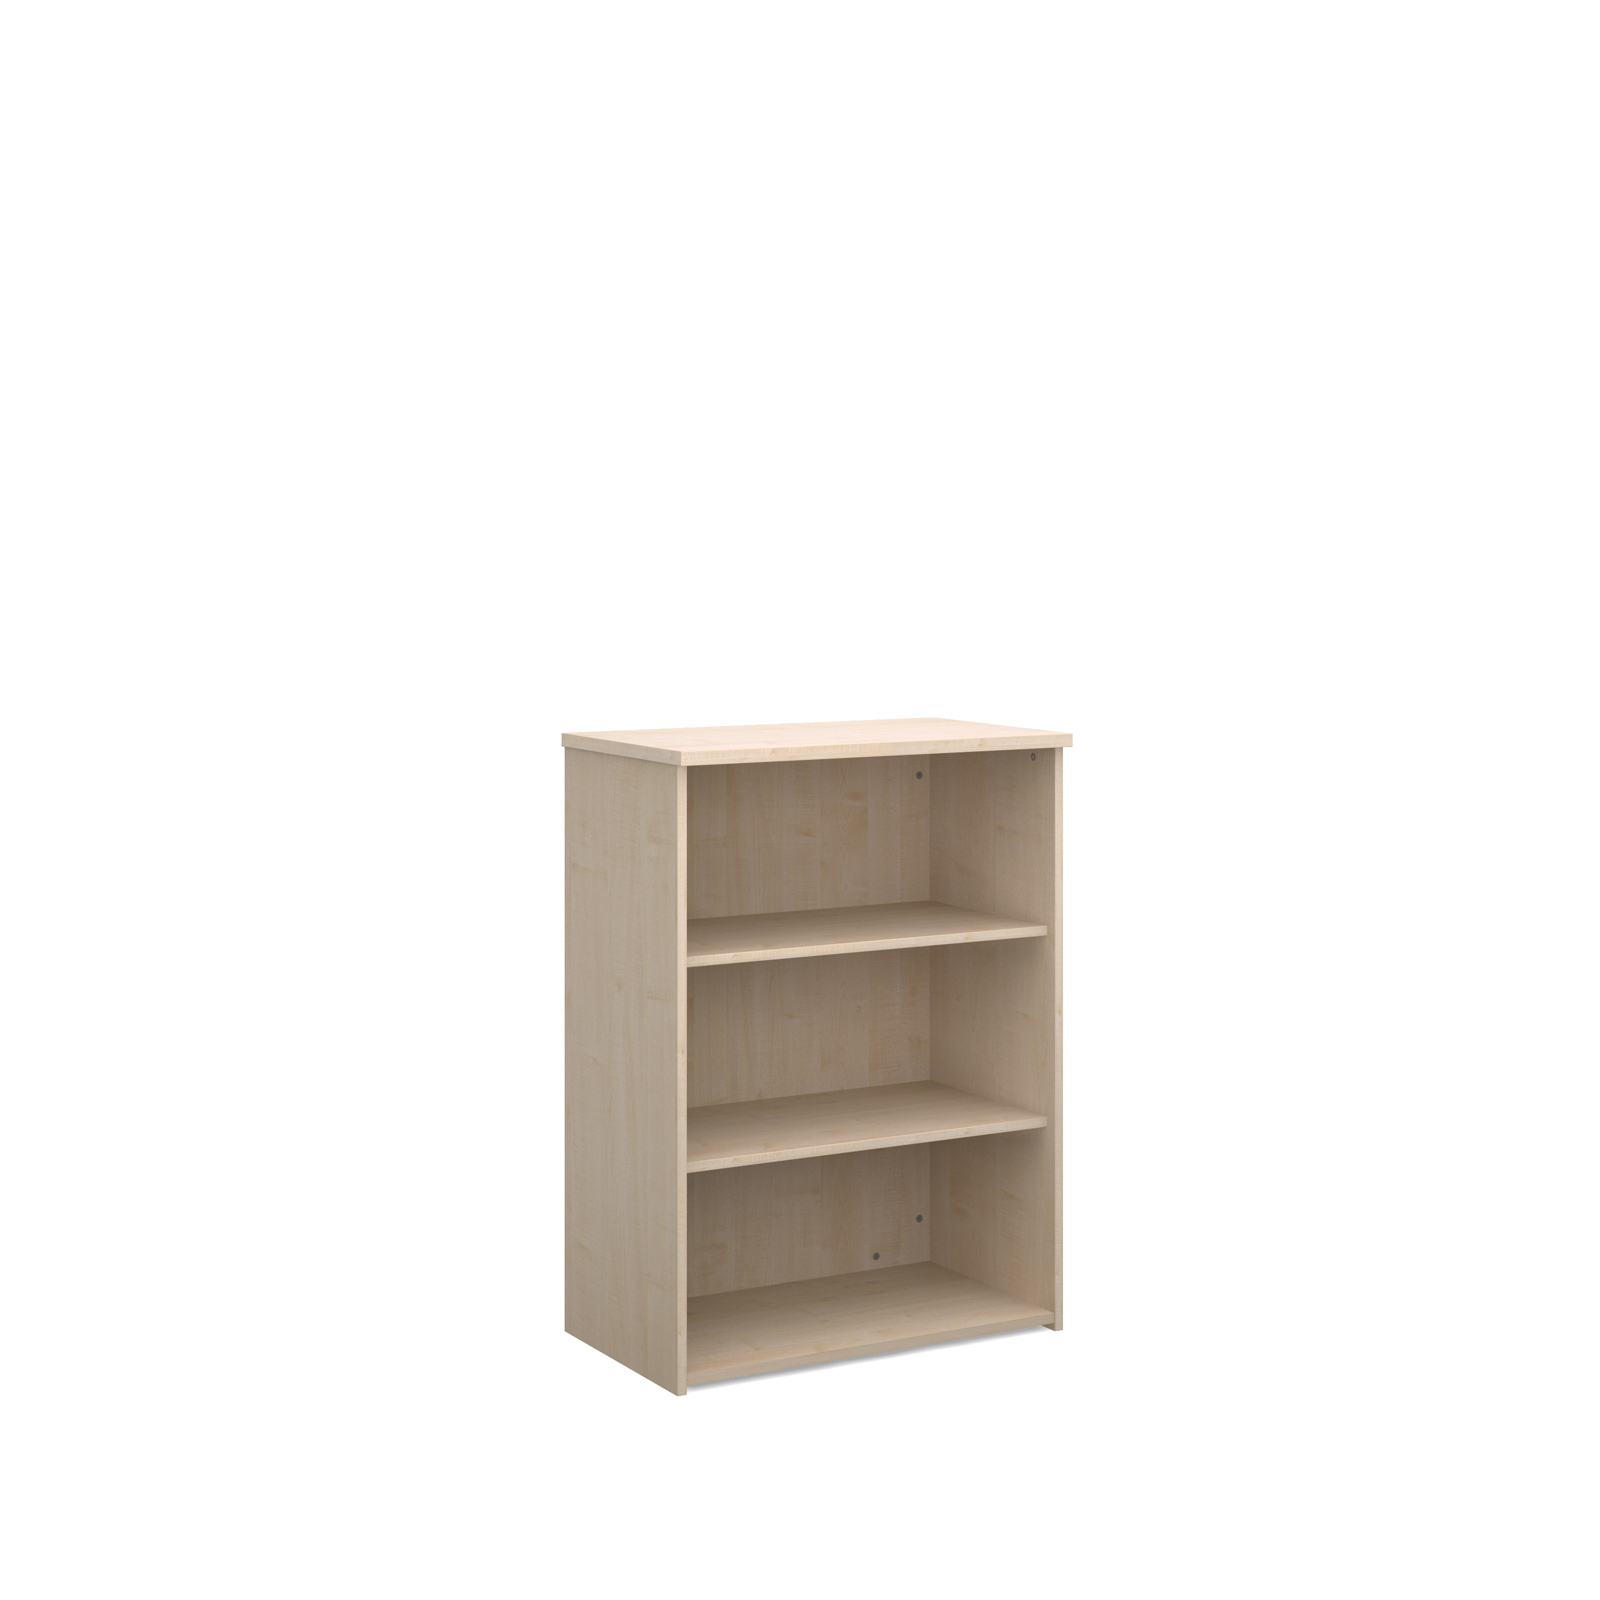 Up To 1200mm High Universal bookcase 1090mm high with 2 shelves - maple